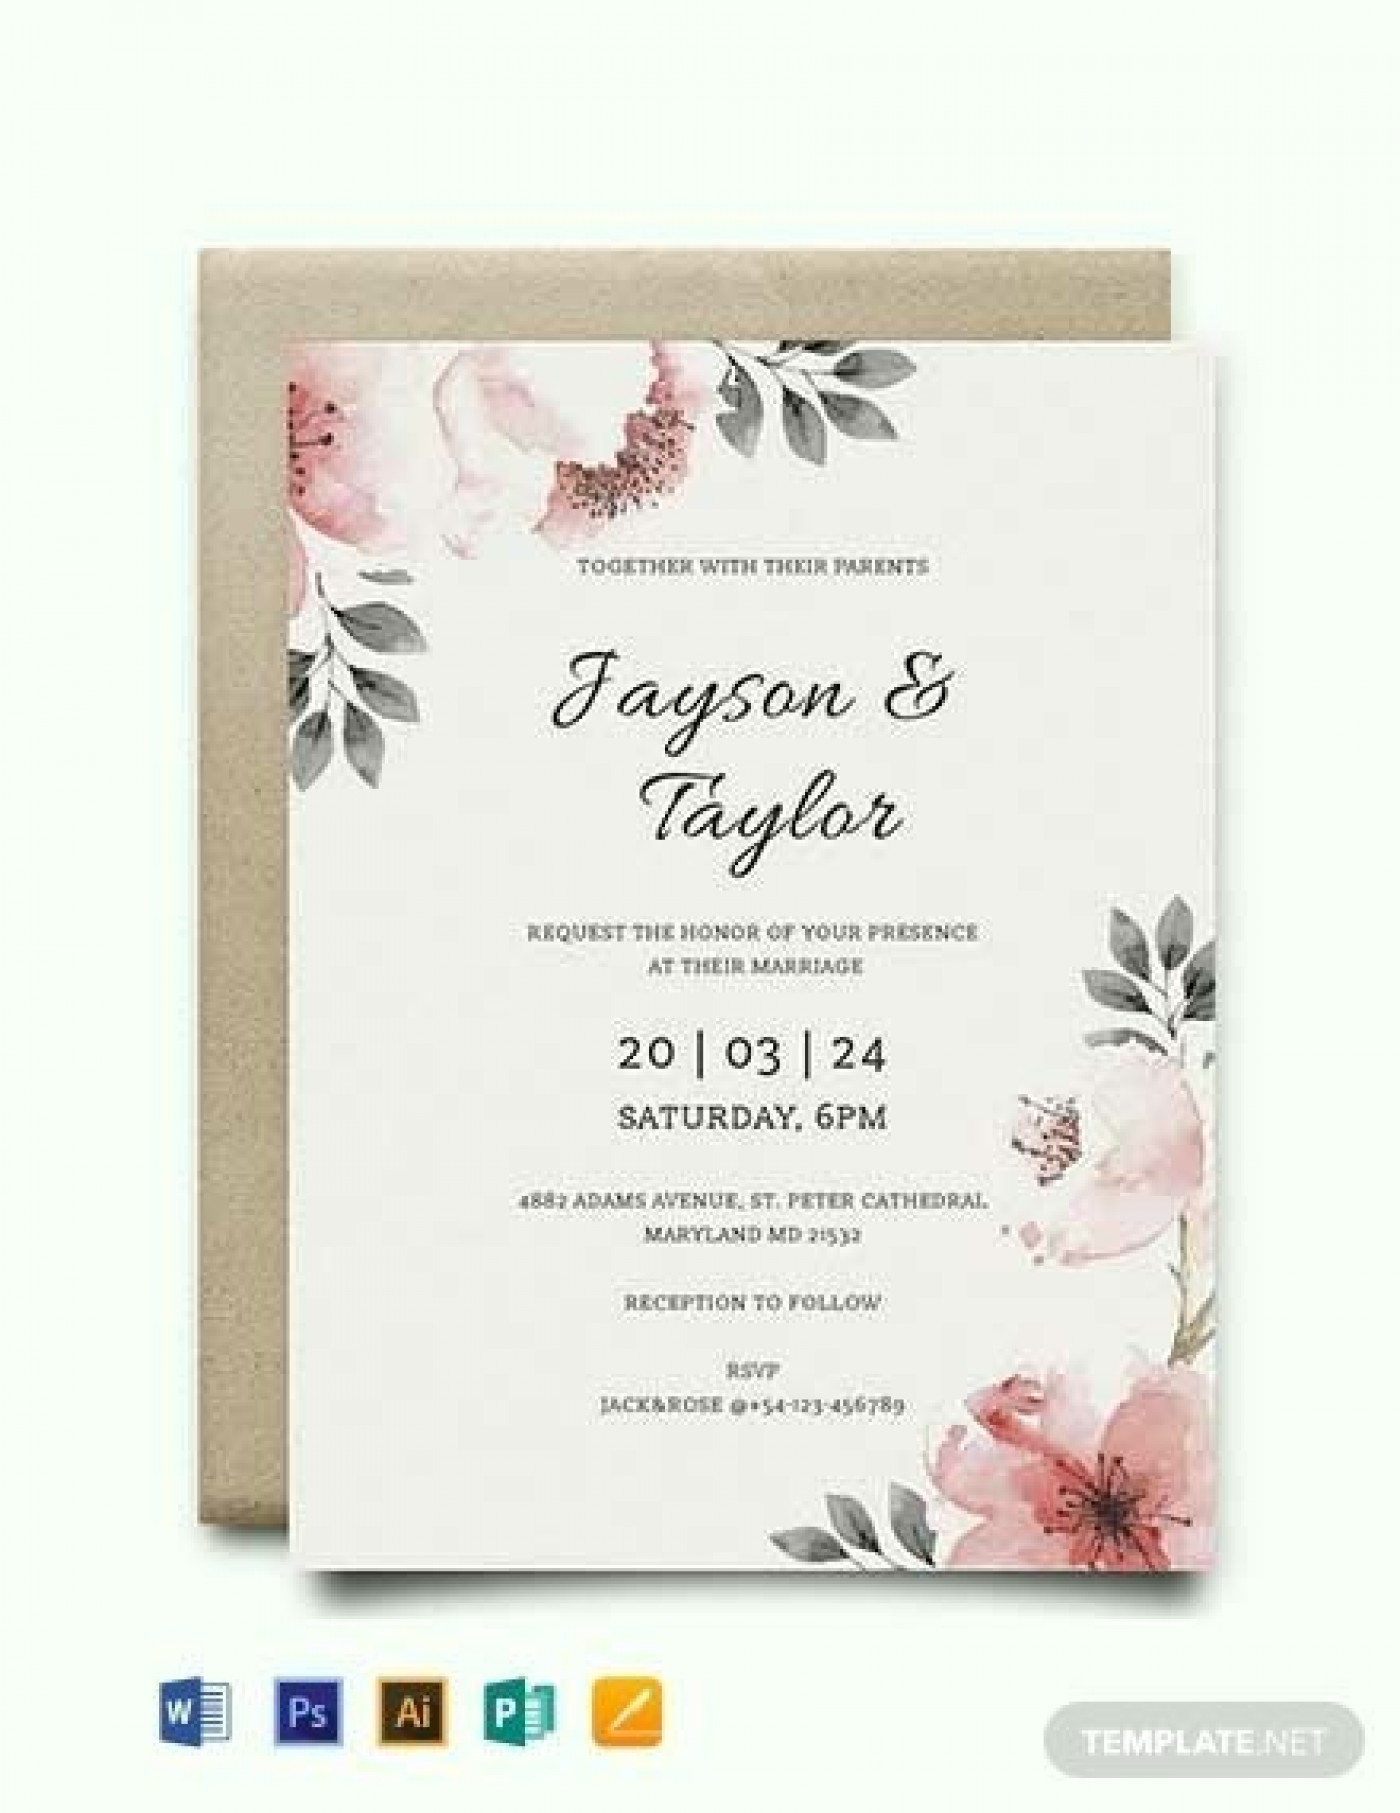 000 Striking Free Download Marriage Invitation Template Example  Card Design Psd After Effect1400